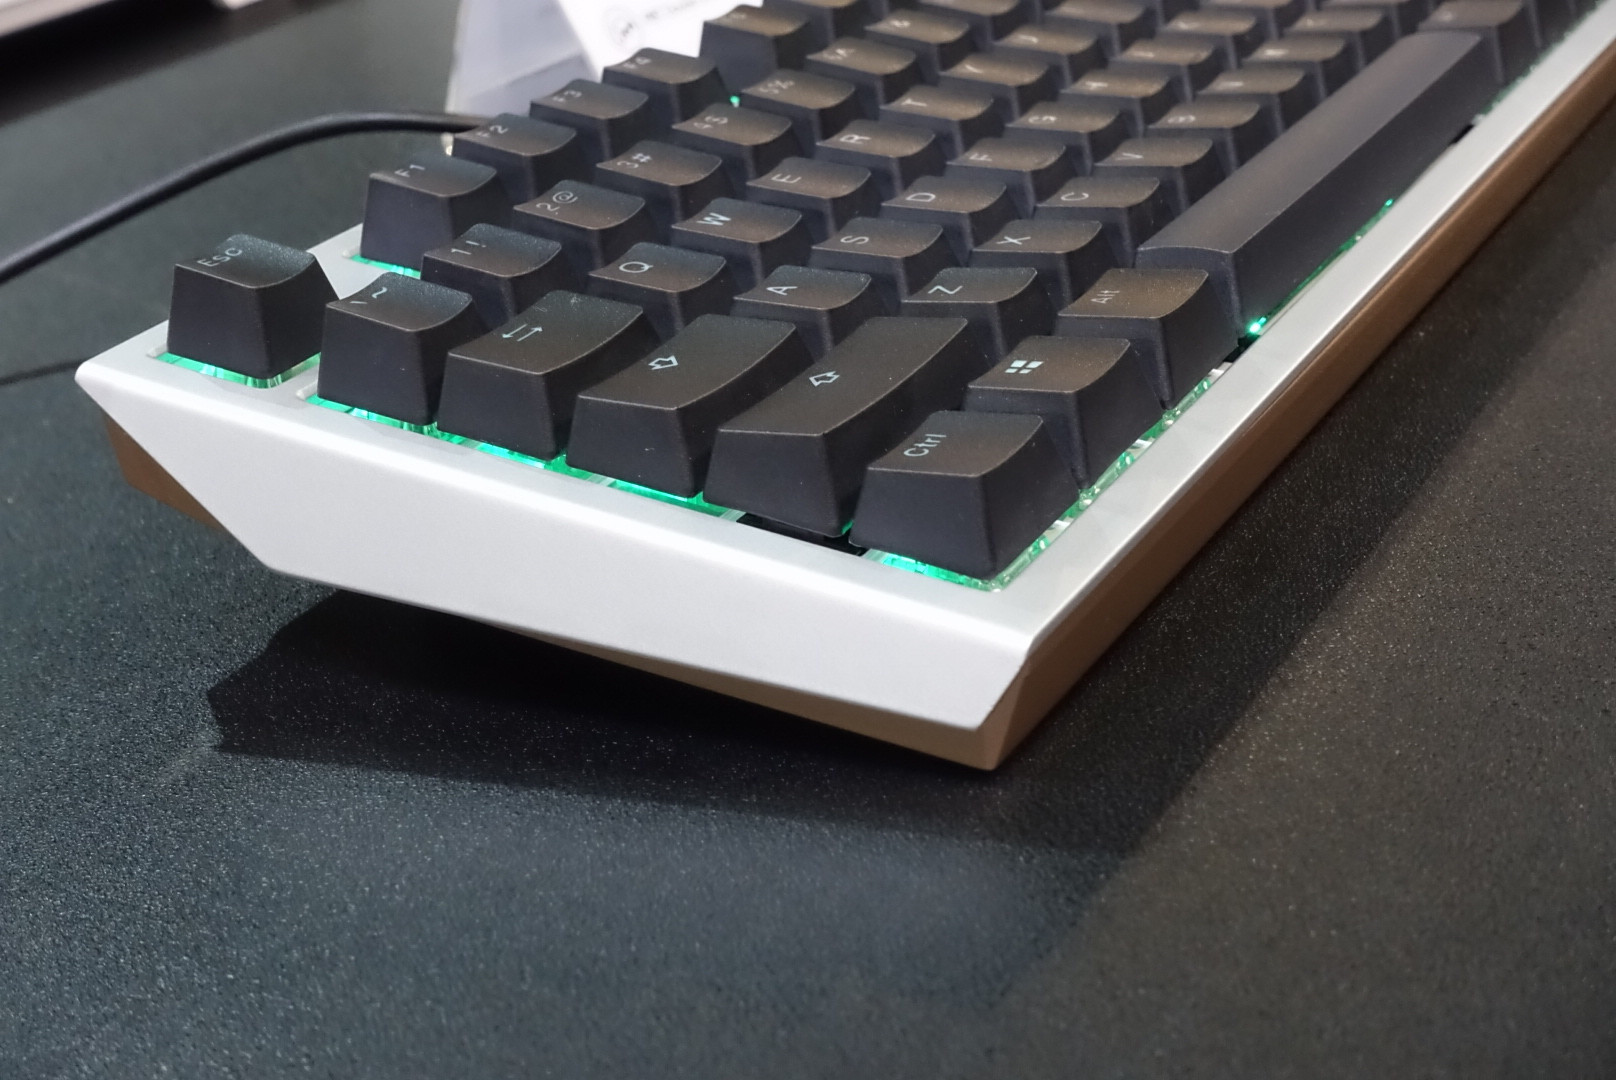 Ducky Reveals the Shine 7 and Year of the Dog Keyboards